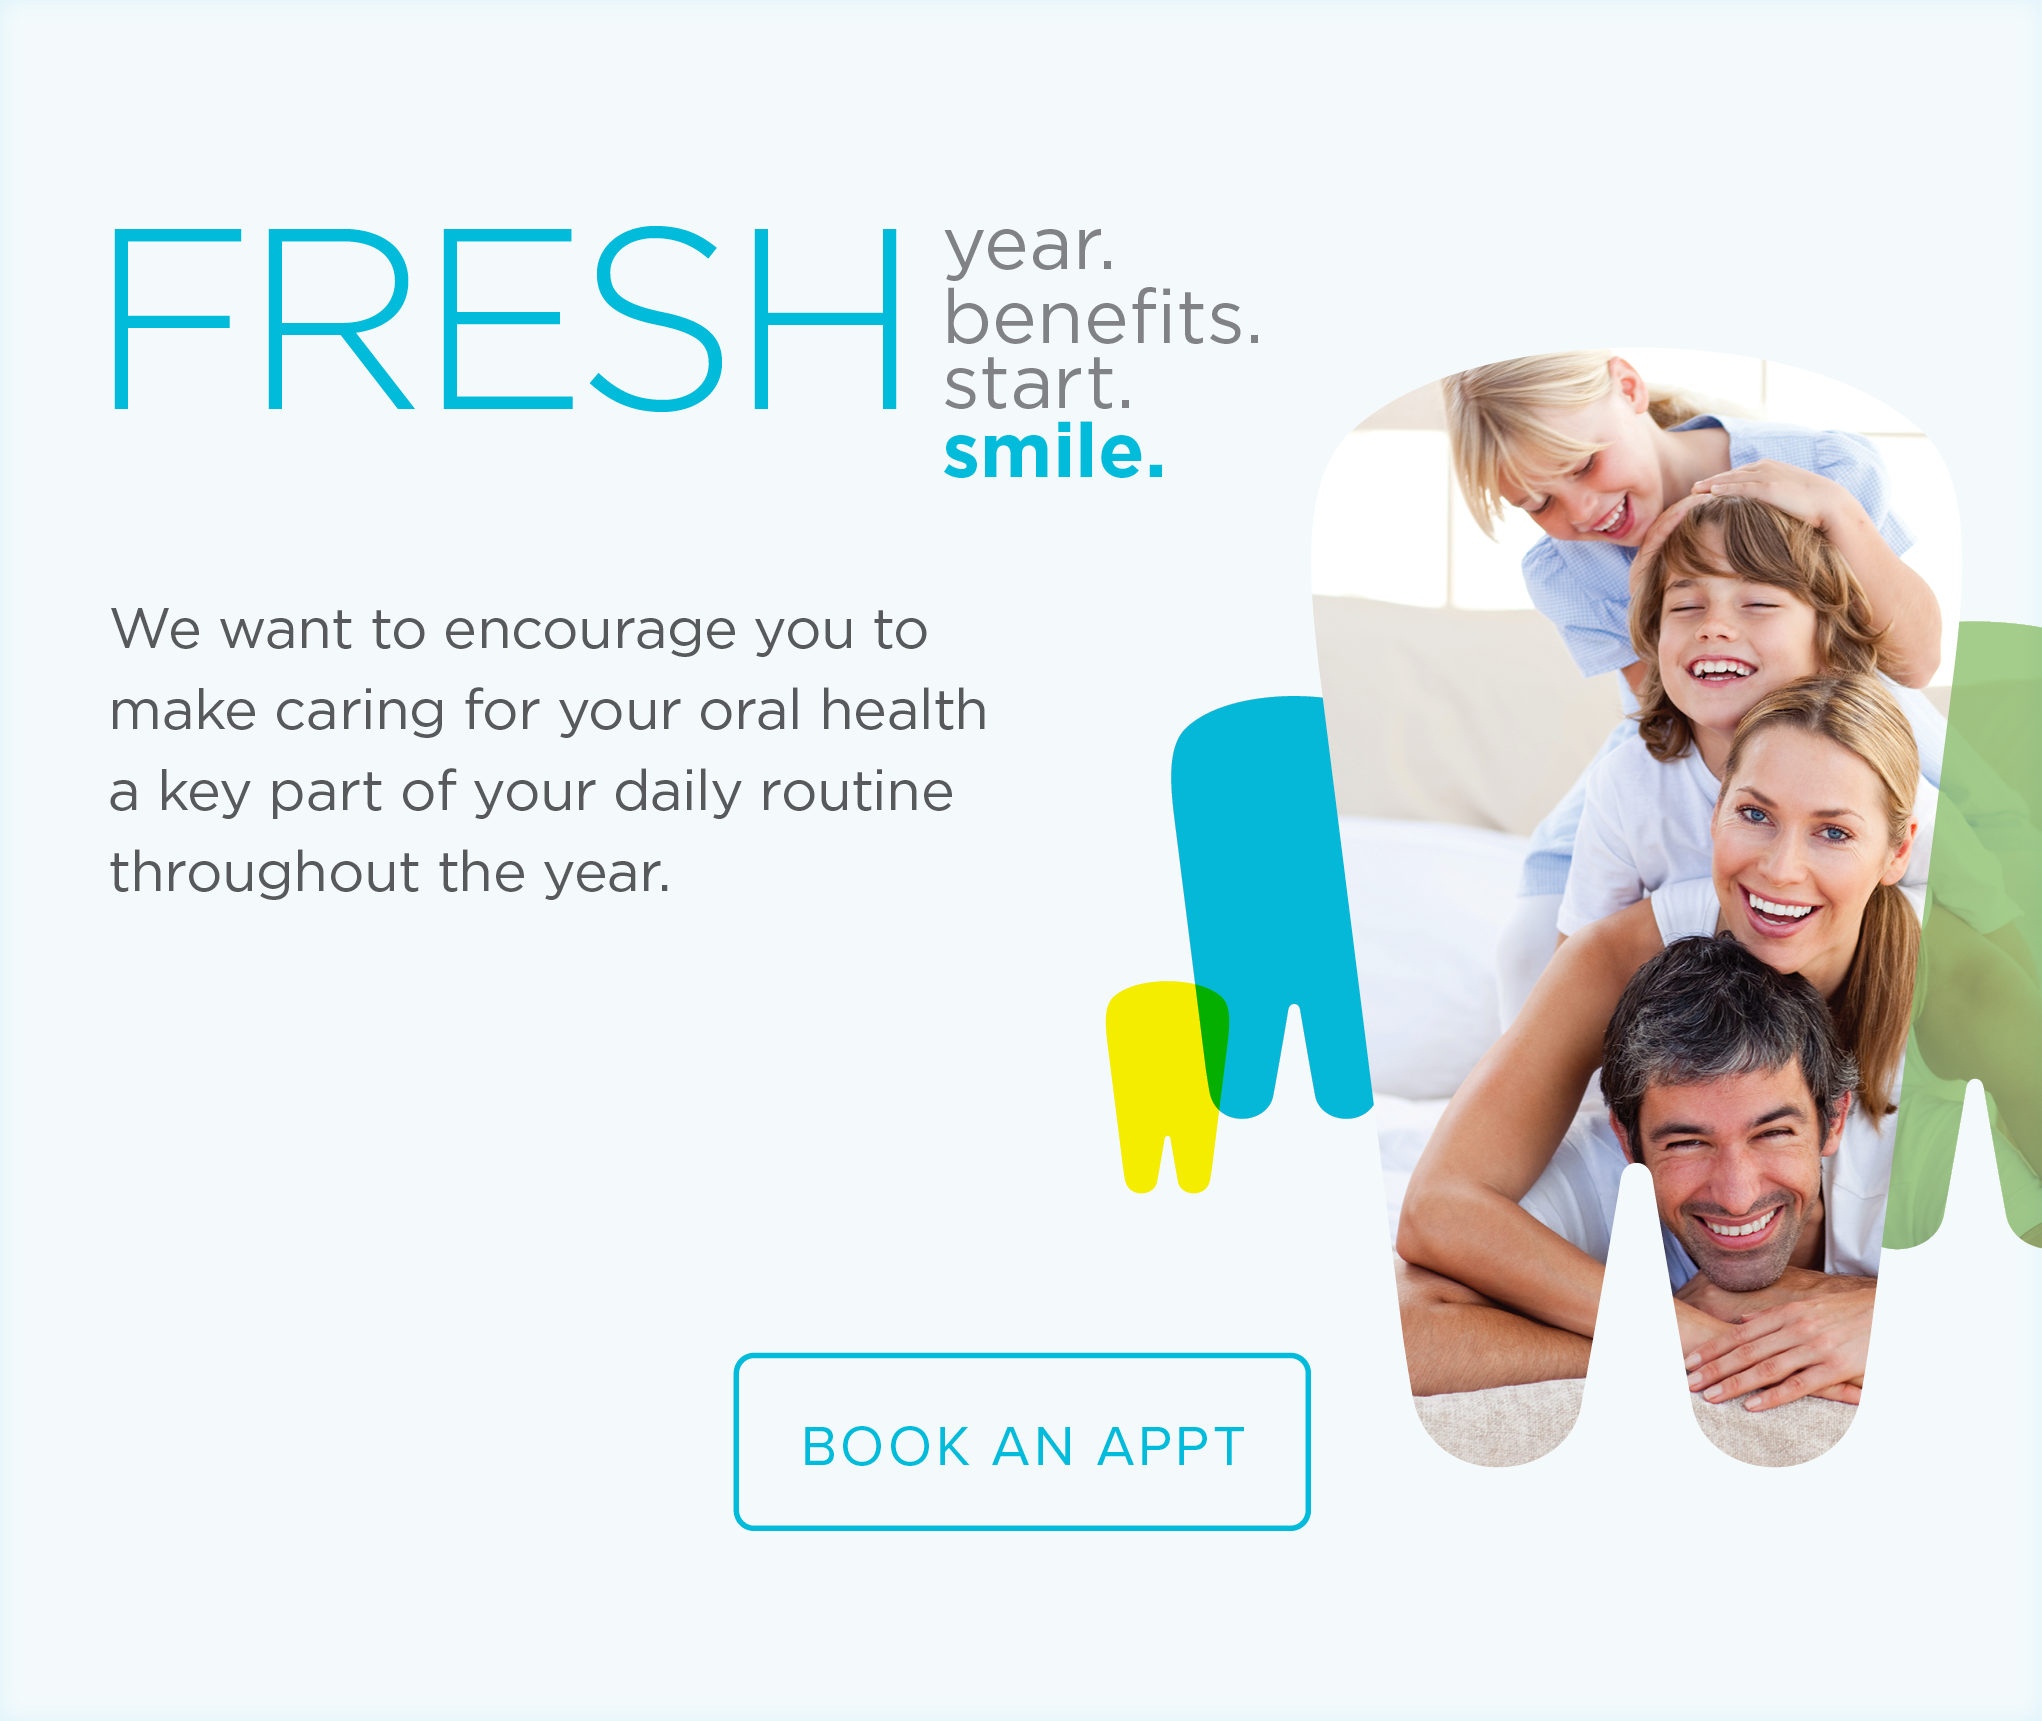 Hilltop Smiles Dentistry and Orthodontics - Make the Most of Your Benefits